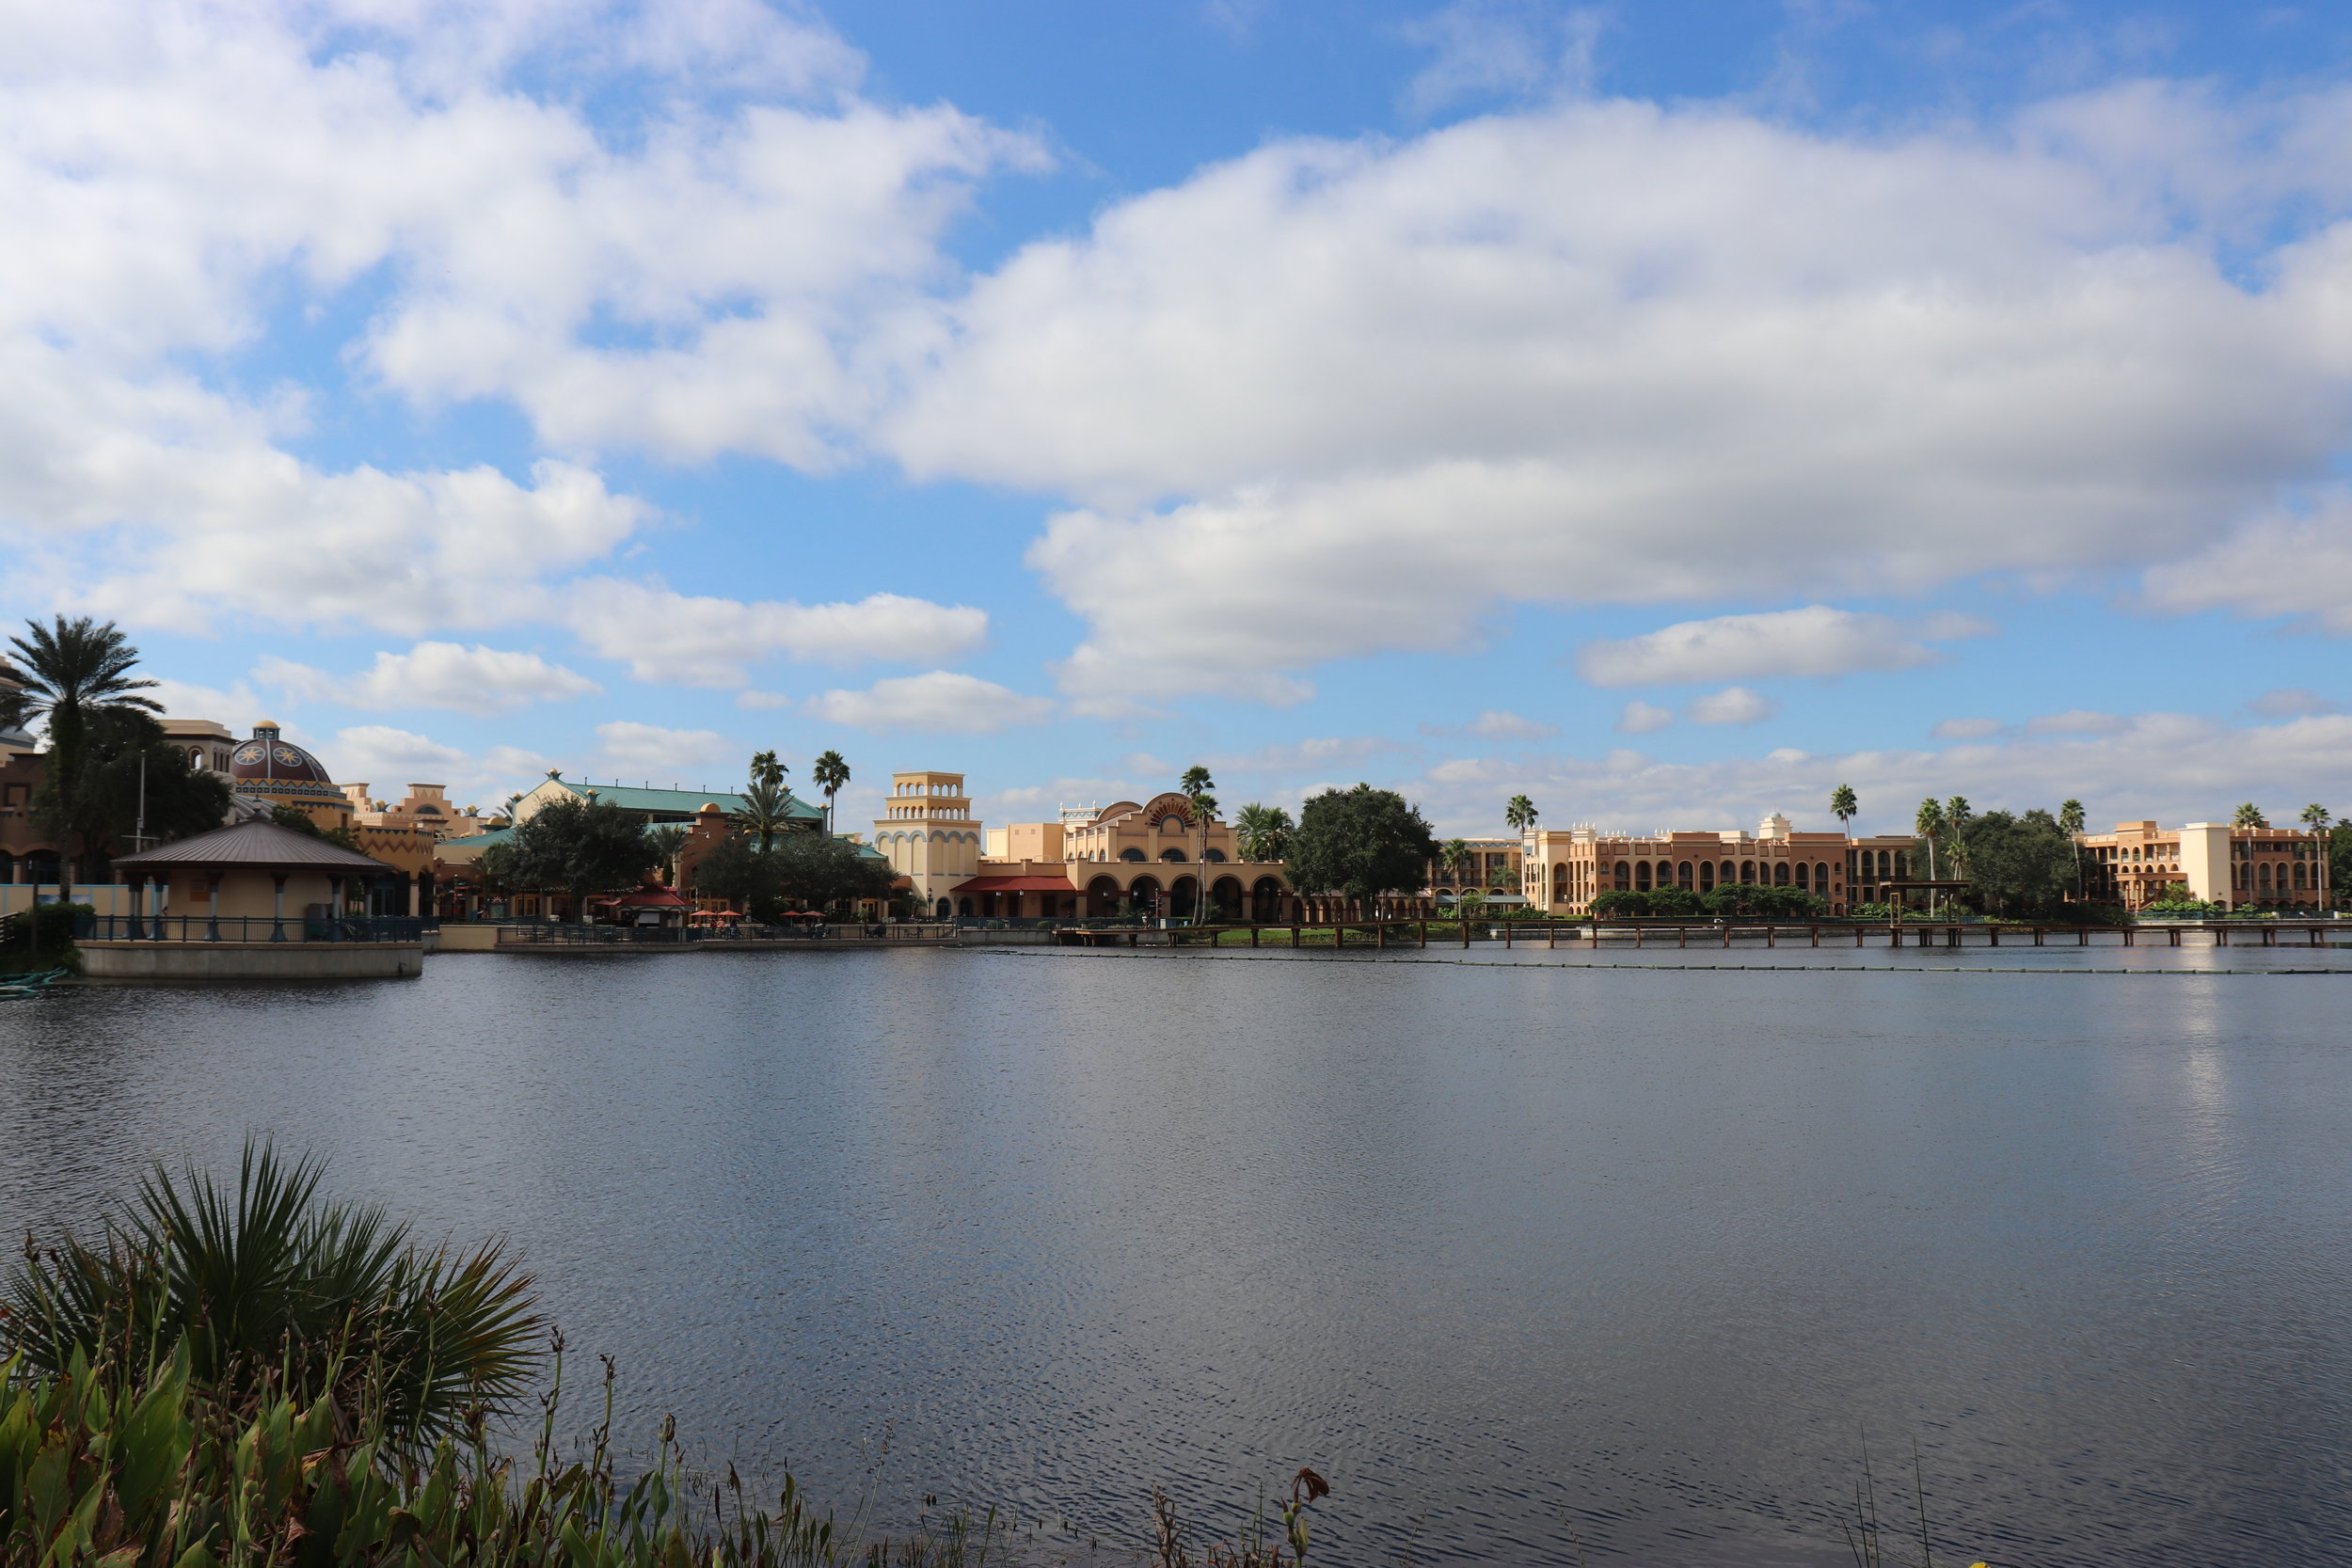 The lake and theming at Coronado Springs certainly is pretty.